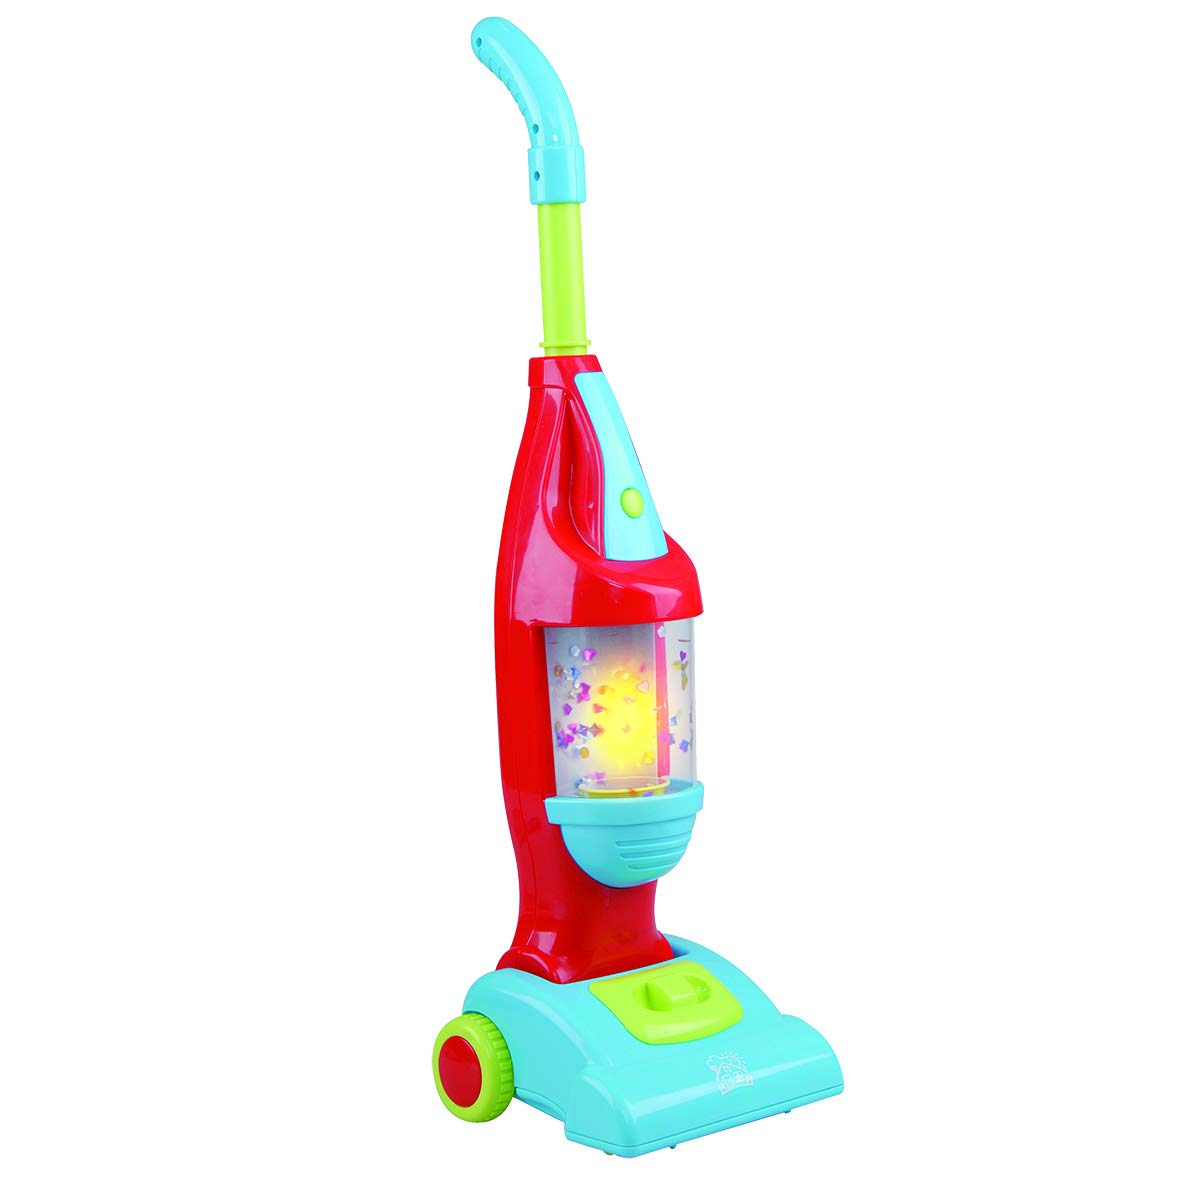 Pretend Play My Light Up Playset Cleaning Vacuum for Toddlers & Kids with Sound Effects Trolley Cart with Real Suction